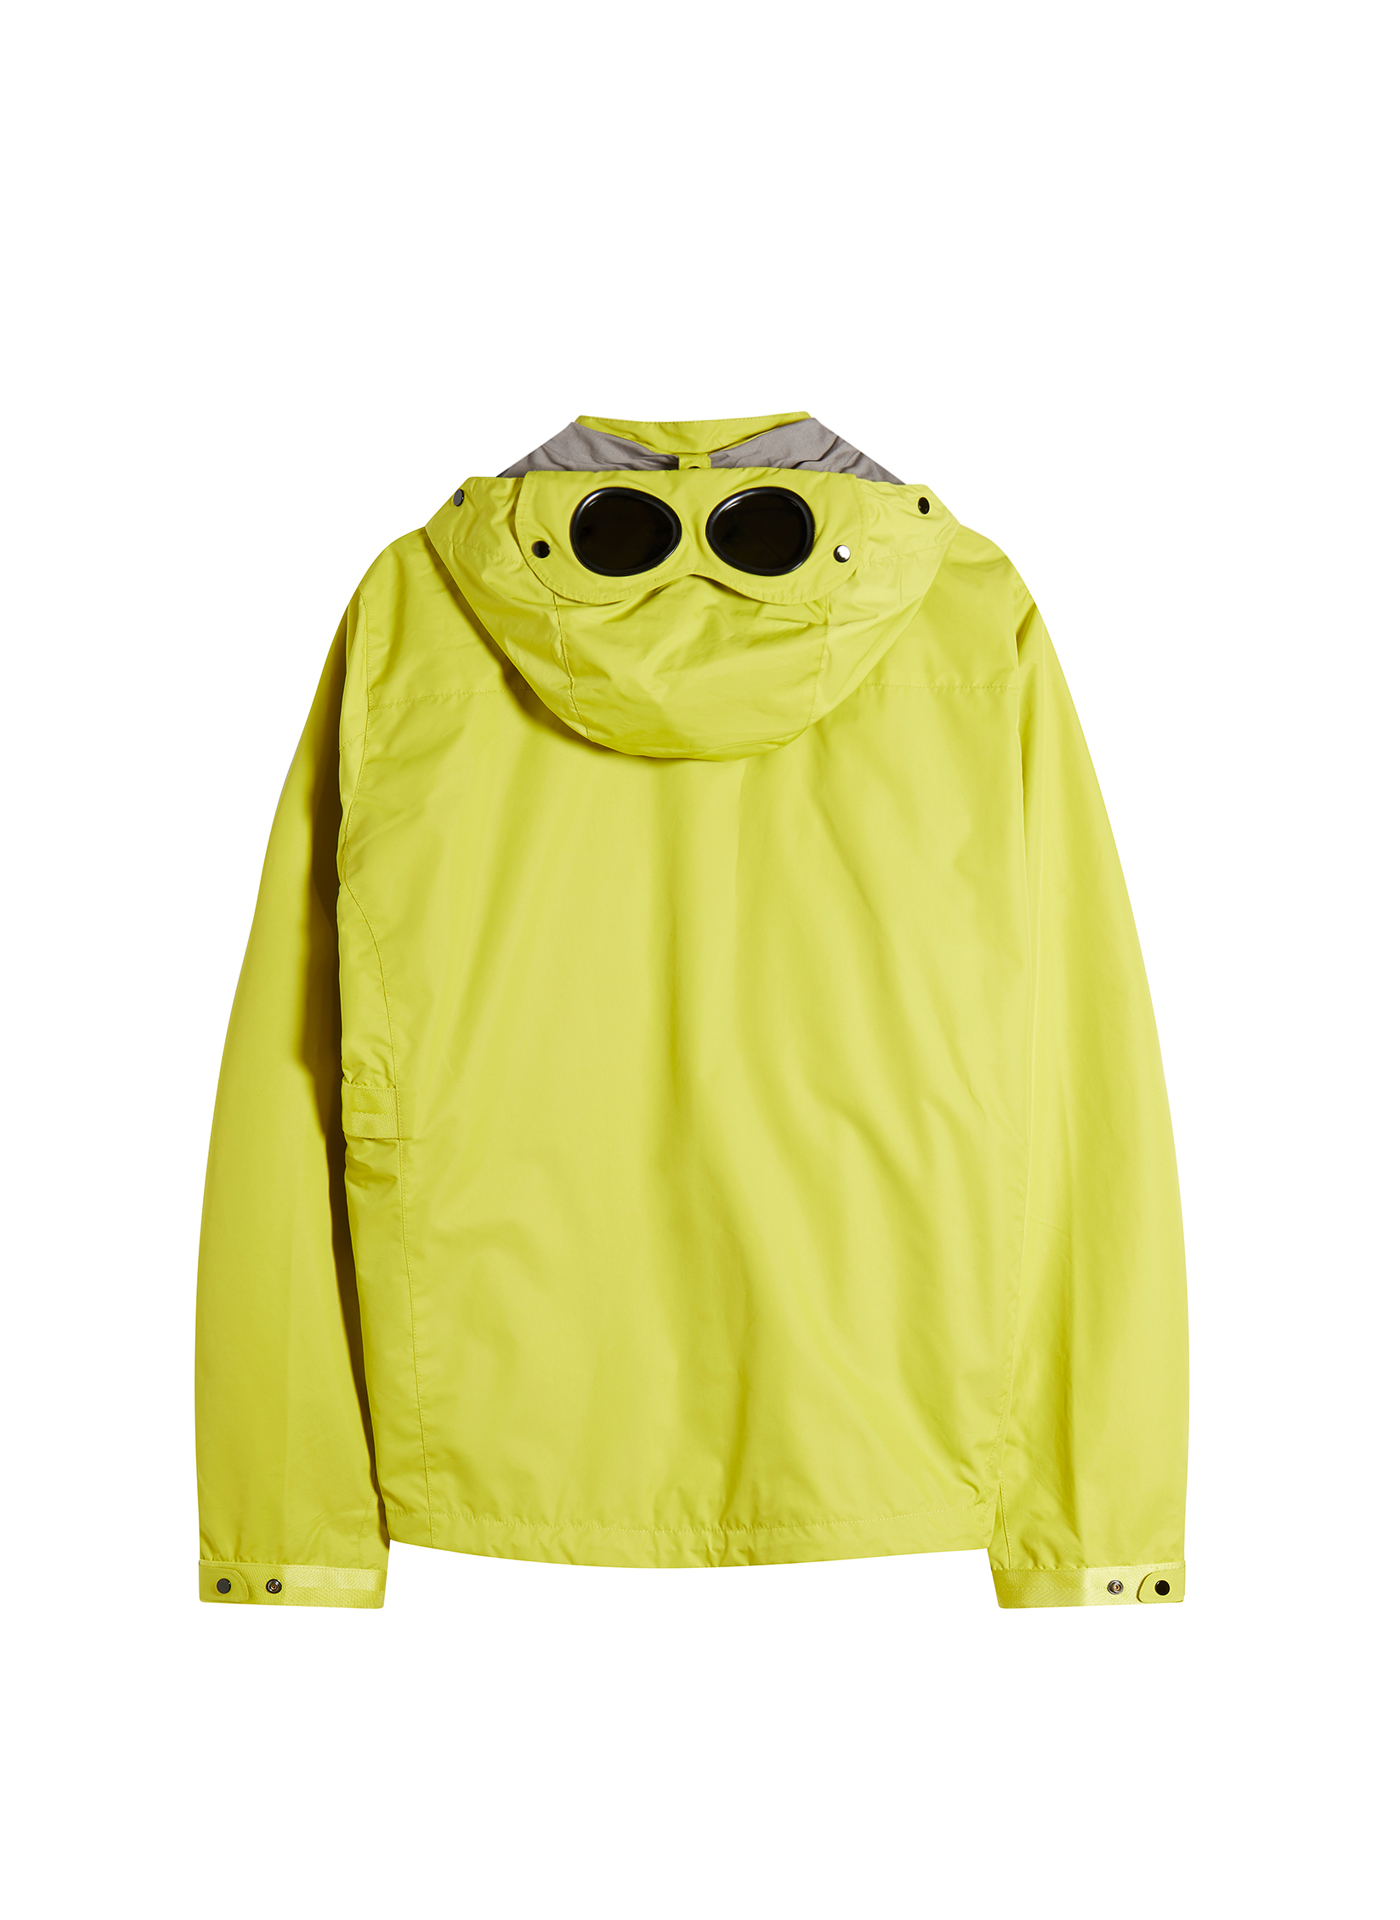 Back side shot of a bright yellow C.P. Company Jacket on white background